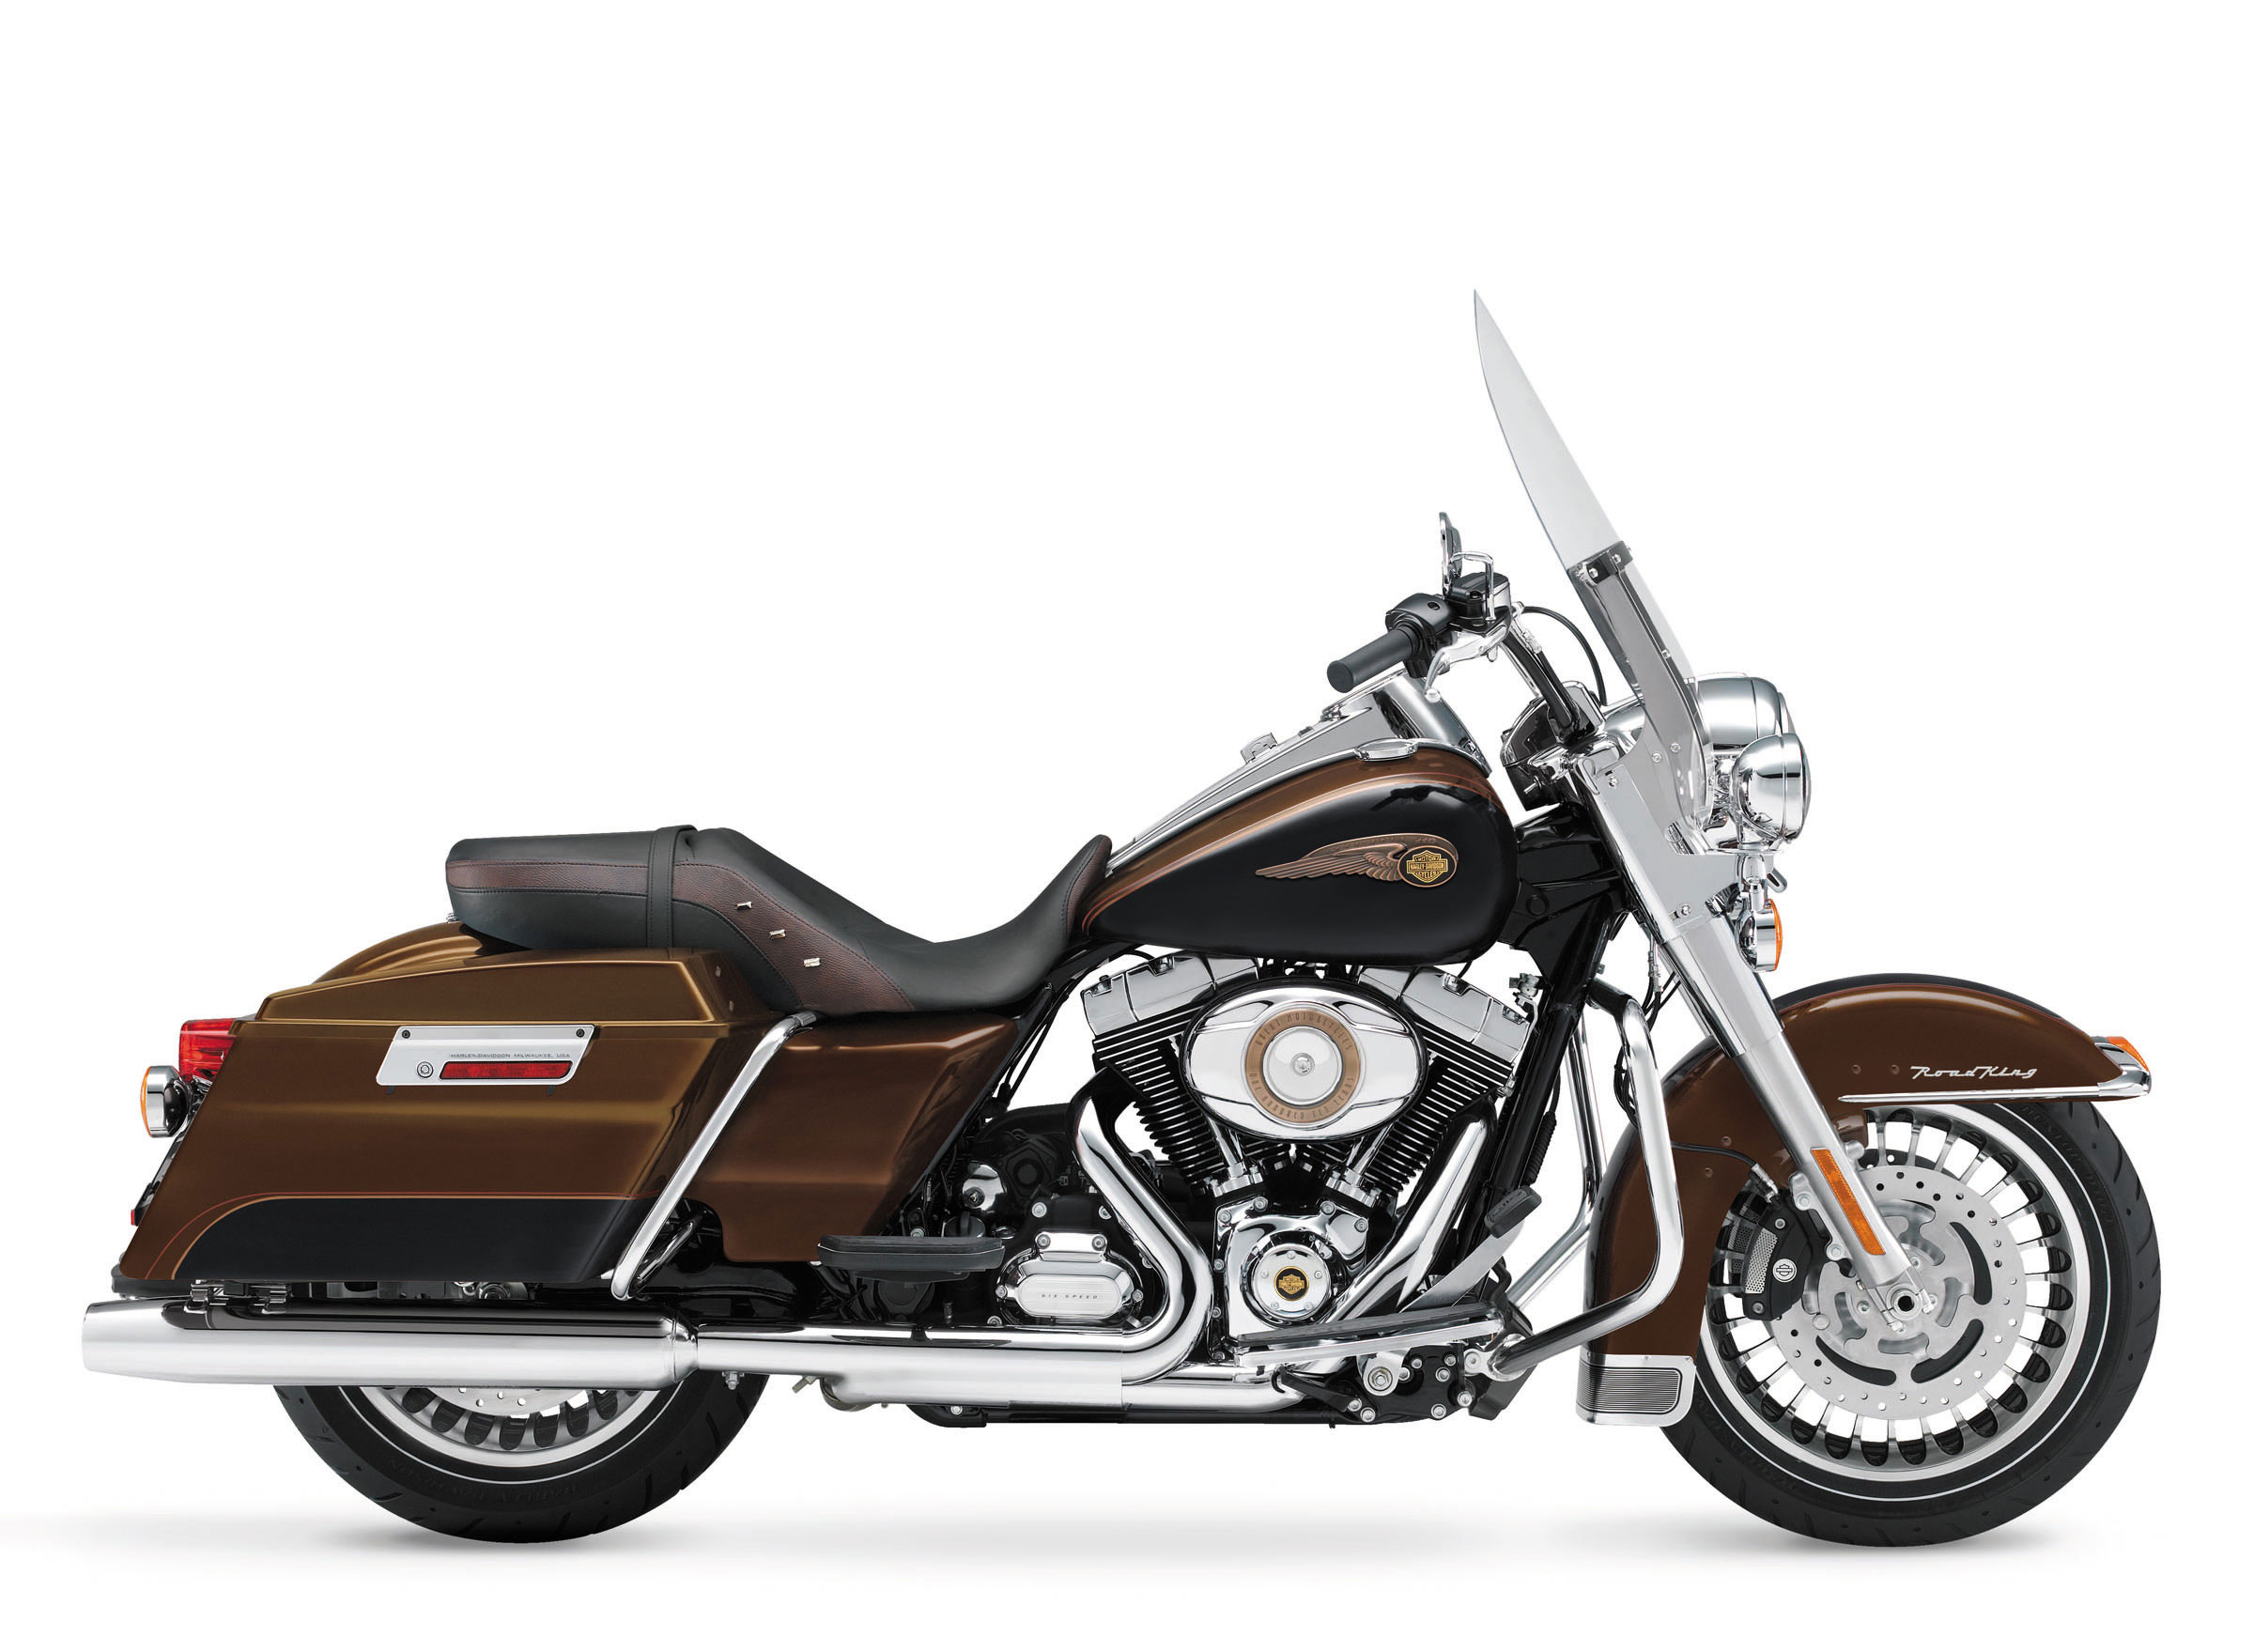 Harley-Davidson FLHR Road King 110th Anniversary 2013 images #81561